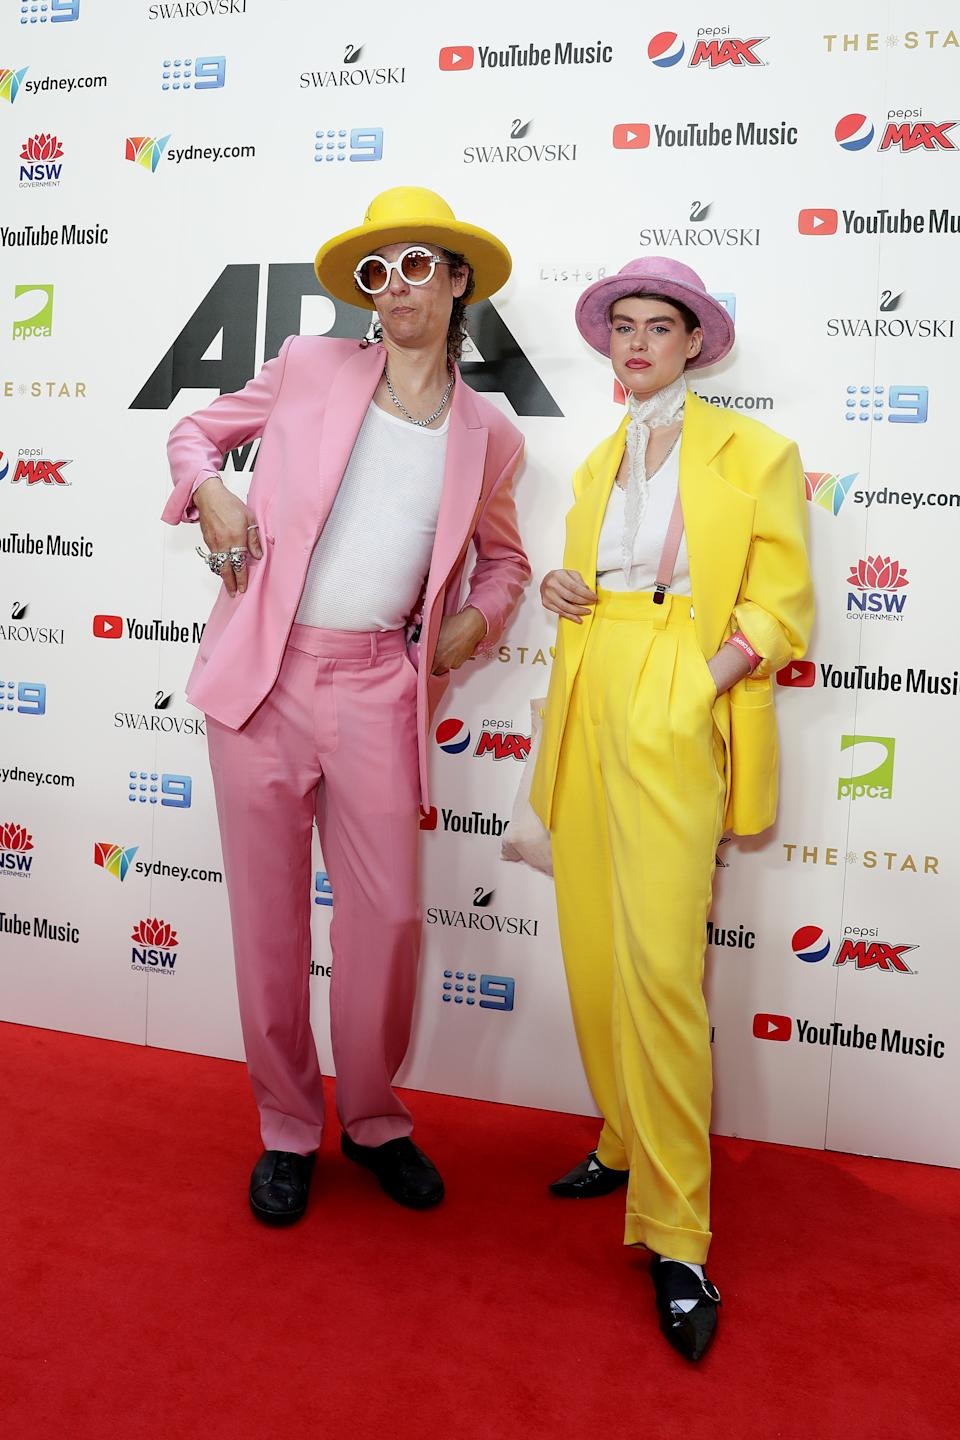 Painter Anthony Lister arrives for the ARIA Awards 2019 at The Star. Photo: Getty Images